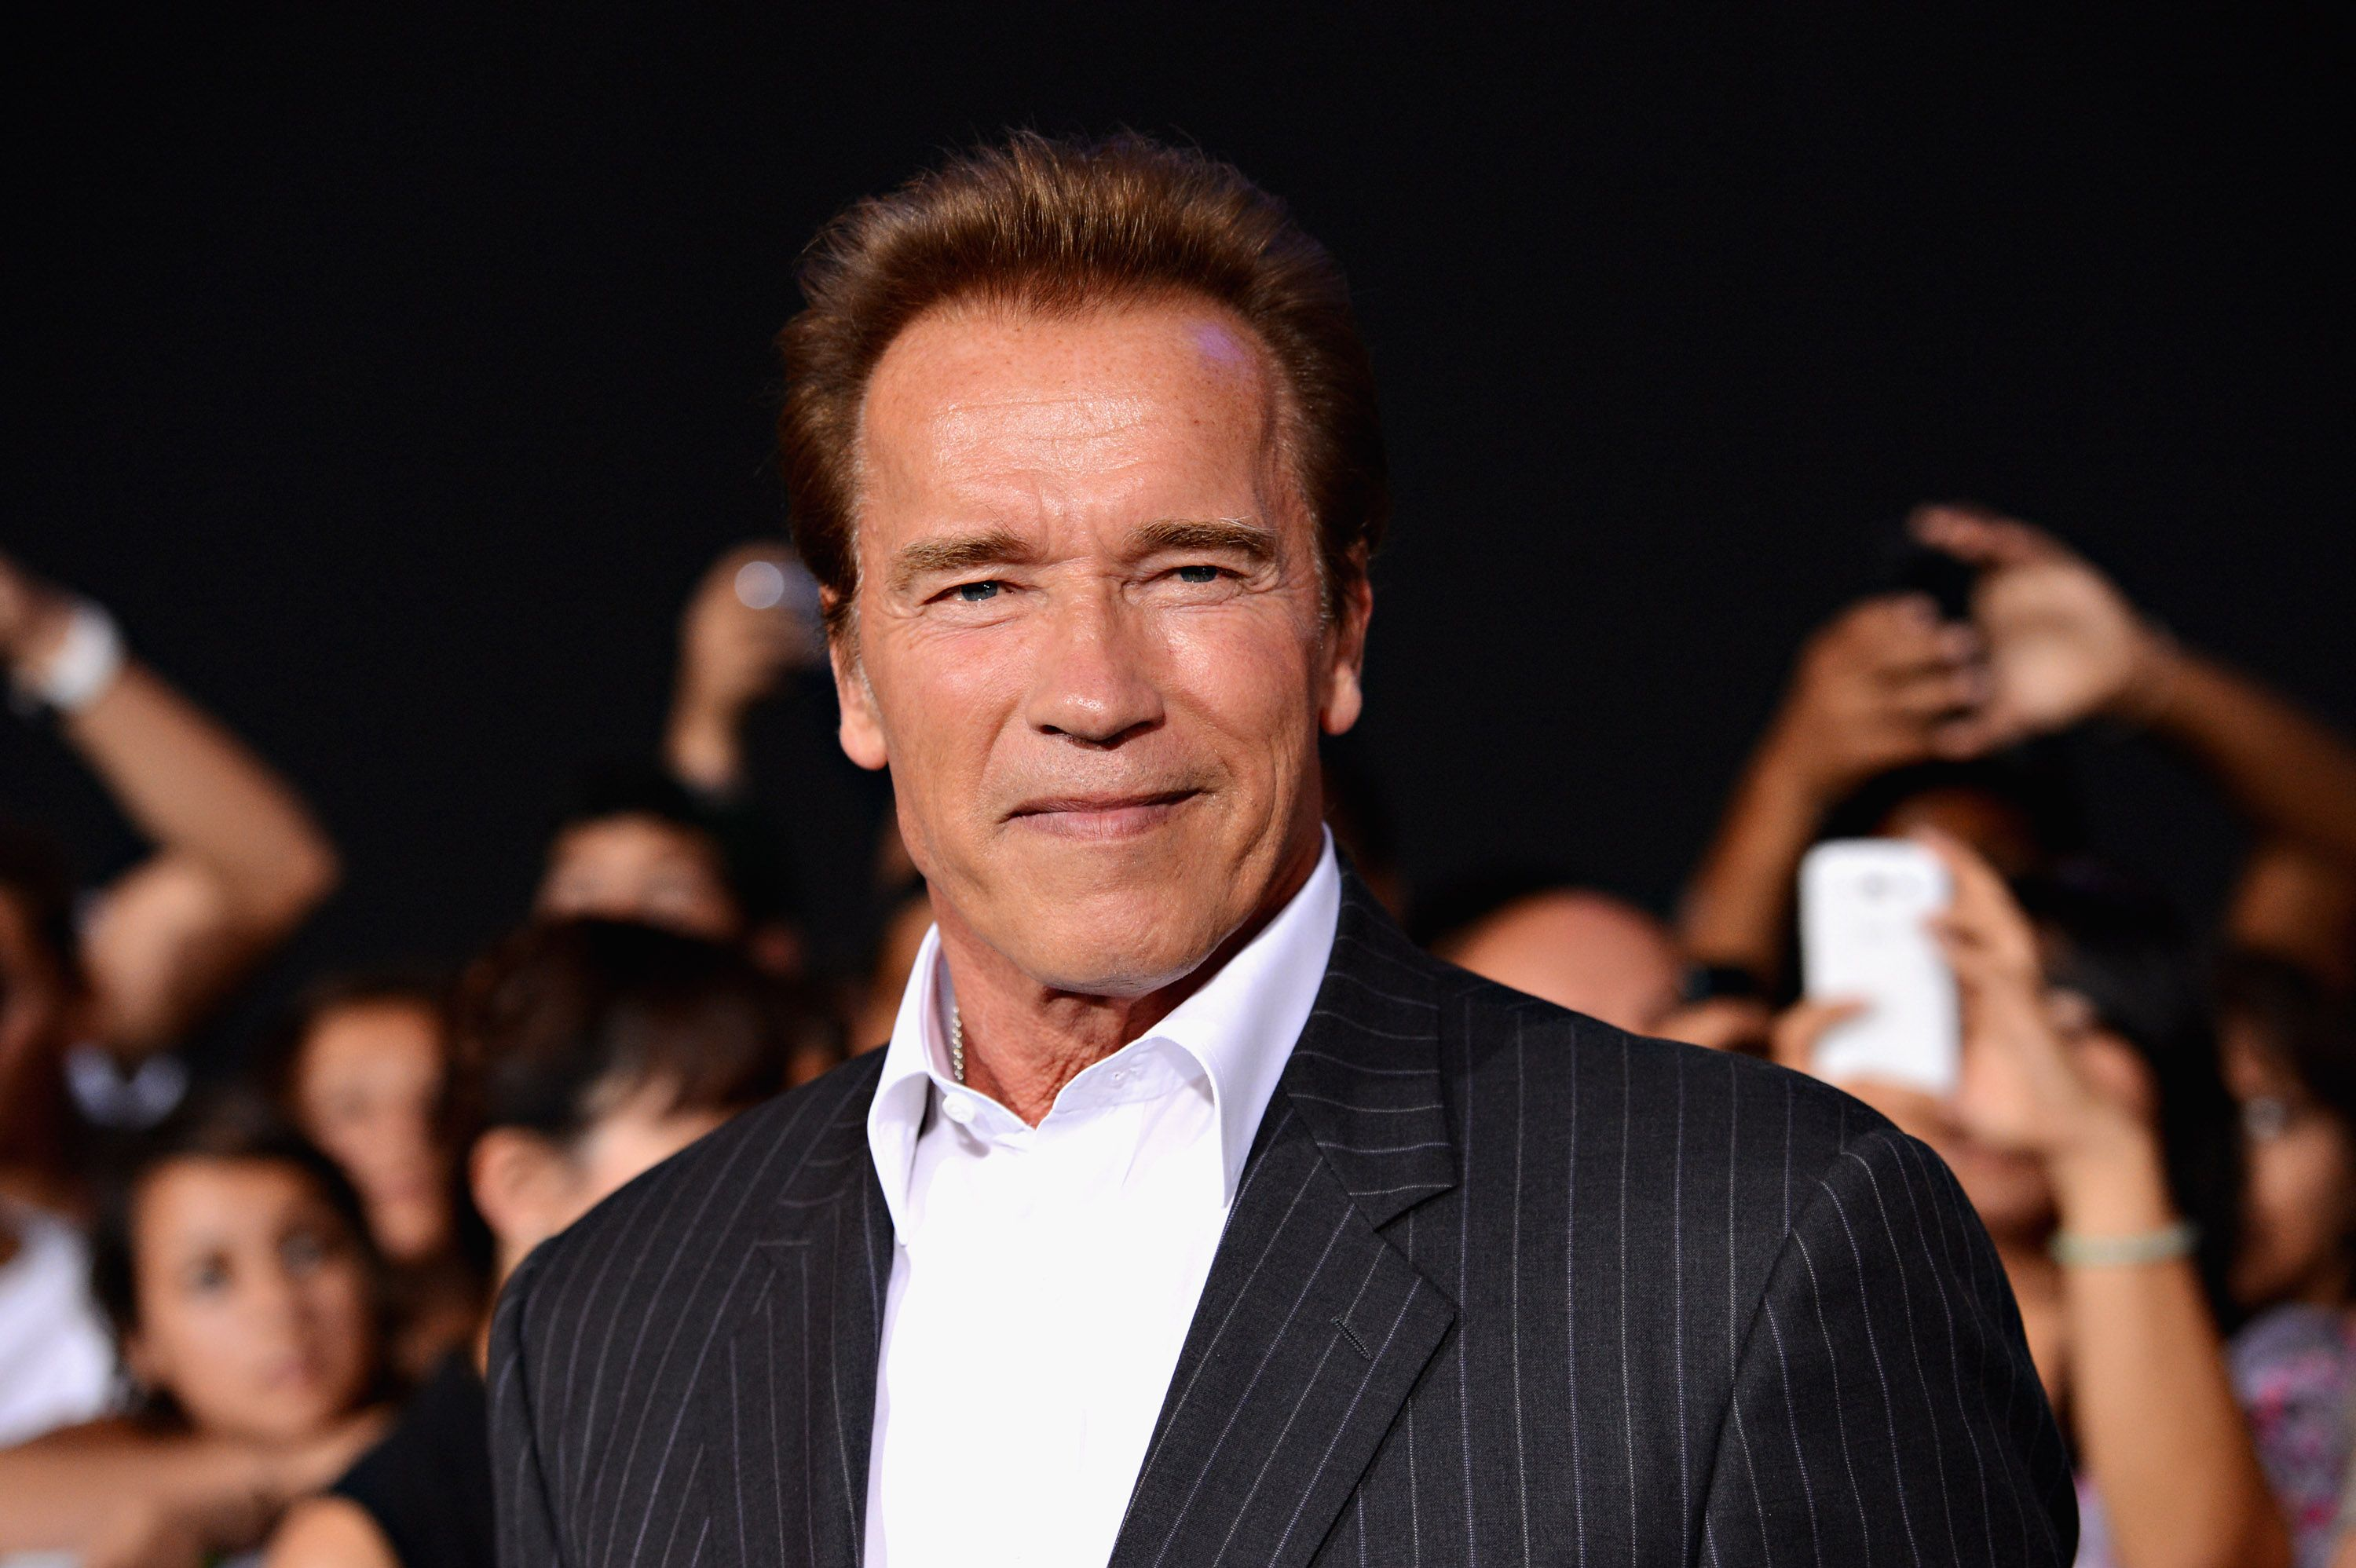 """Arnold Schwarzenegger arrives at Lionsgate Films' """"The Expendables 2"""" premiere on August 15, 2012, in Hollywood, California 